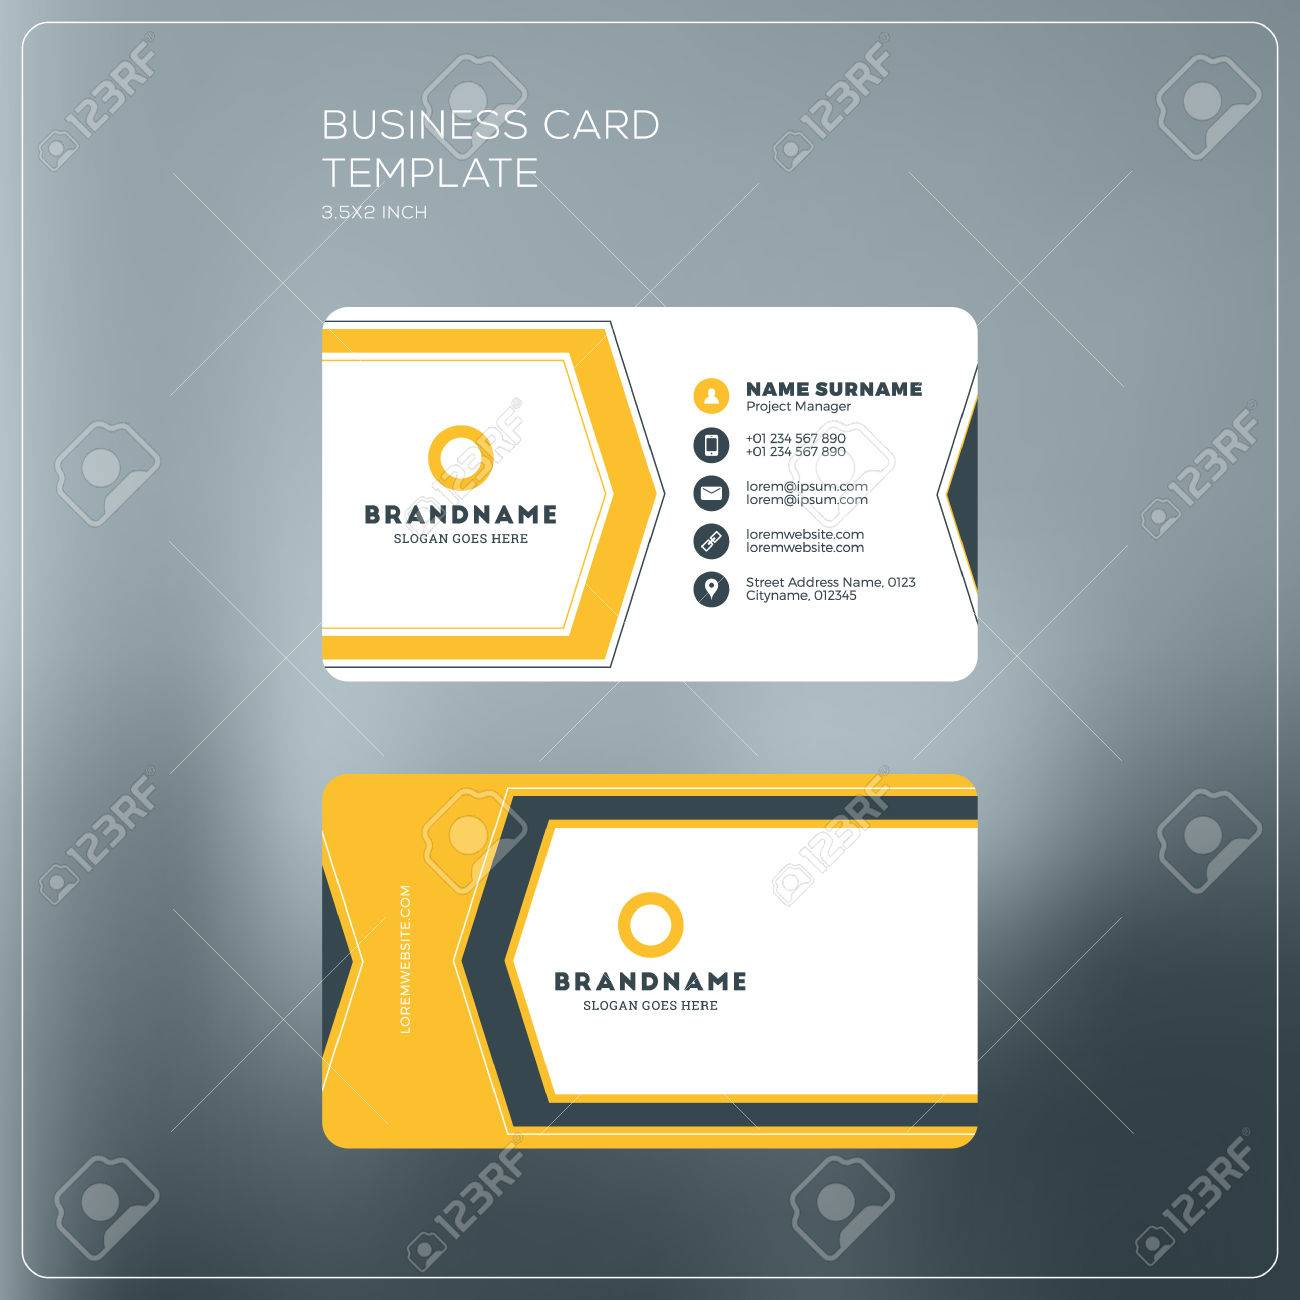 Fancy business card printing vancouver ornament business card business cards vancouver wa images card design and card template reheart Choice Image